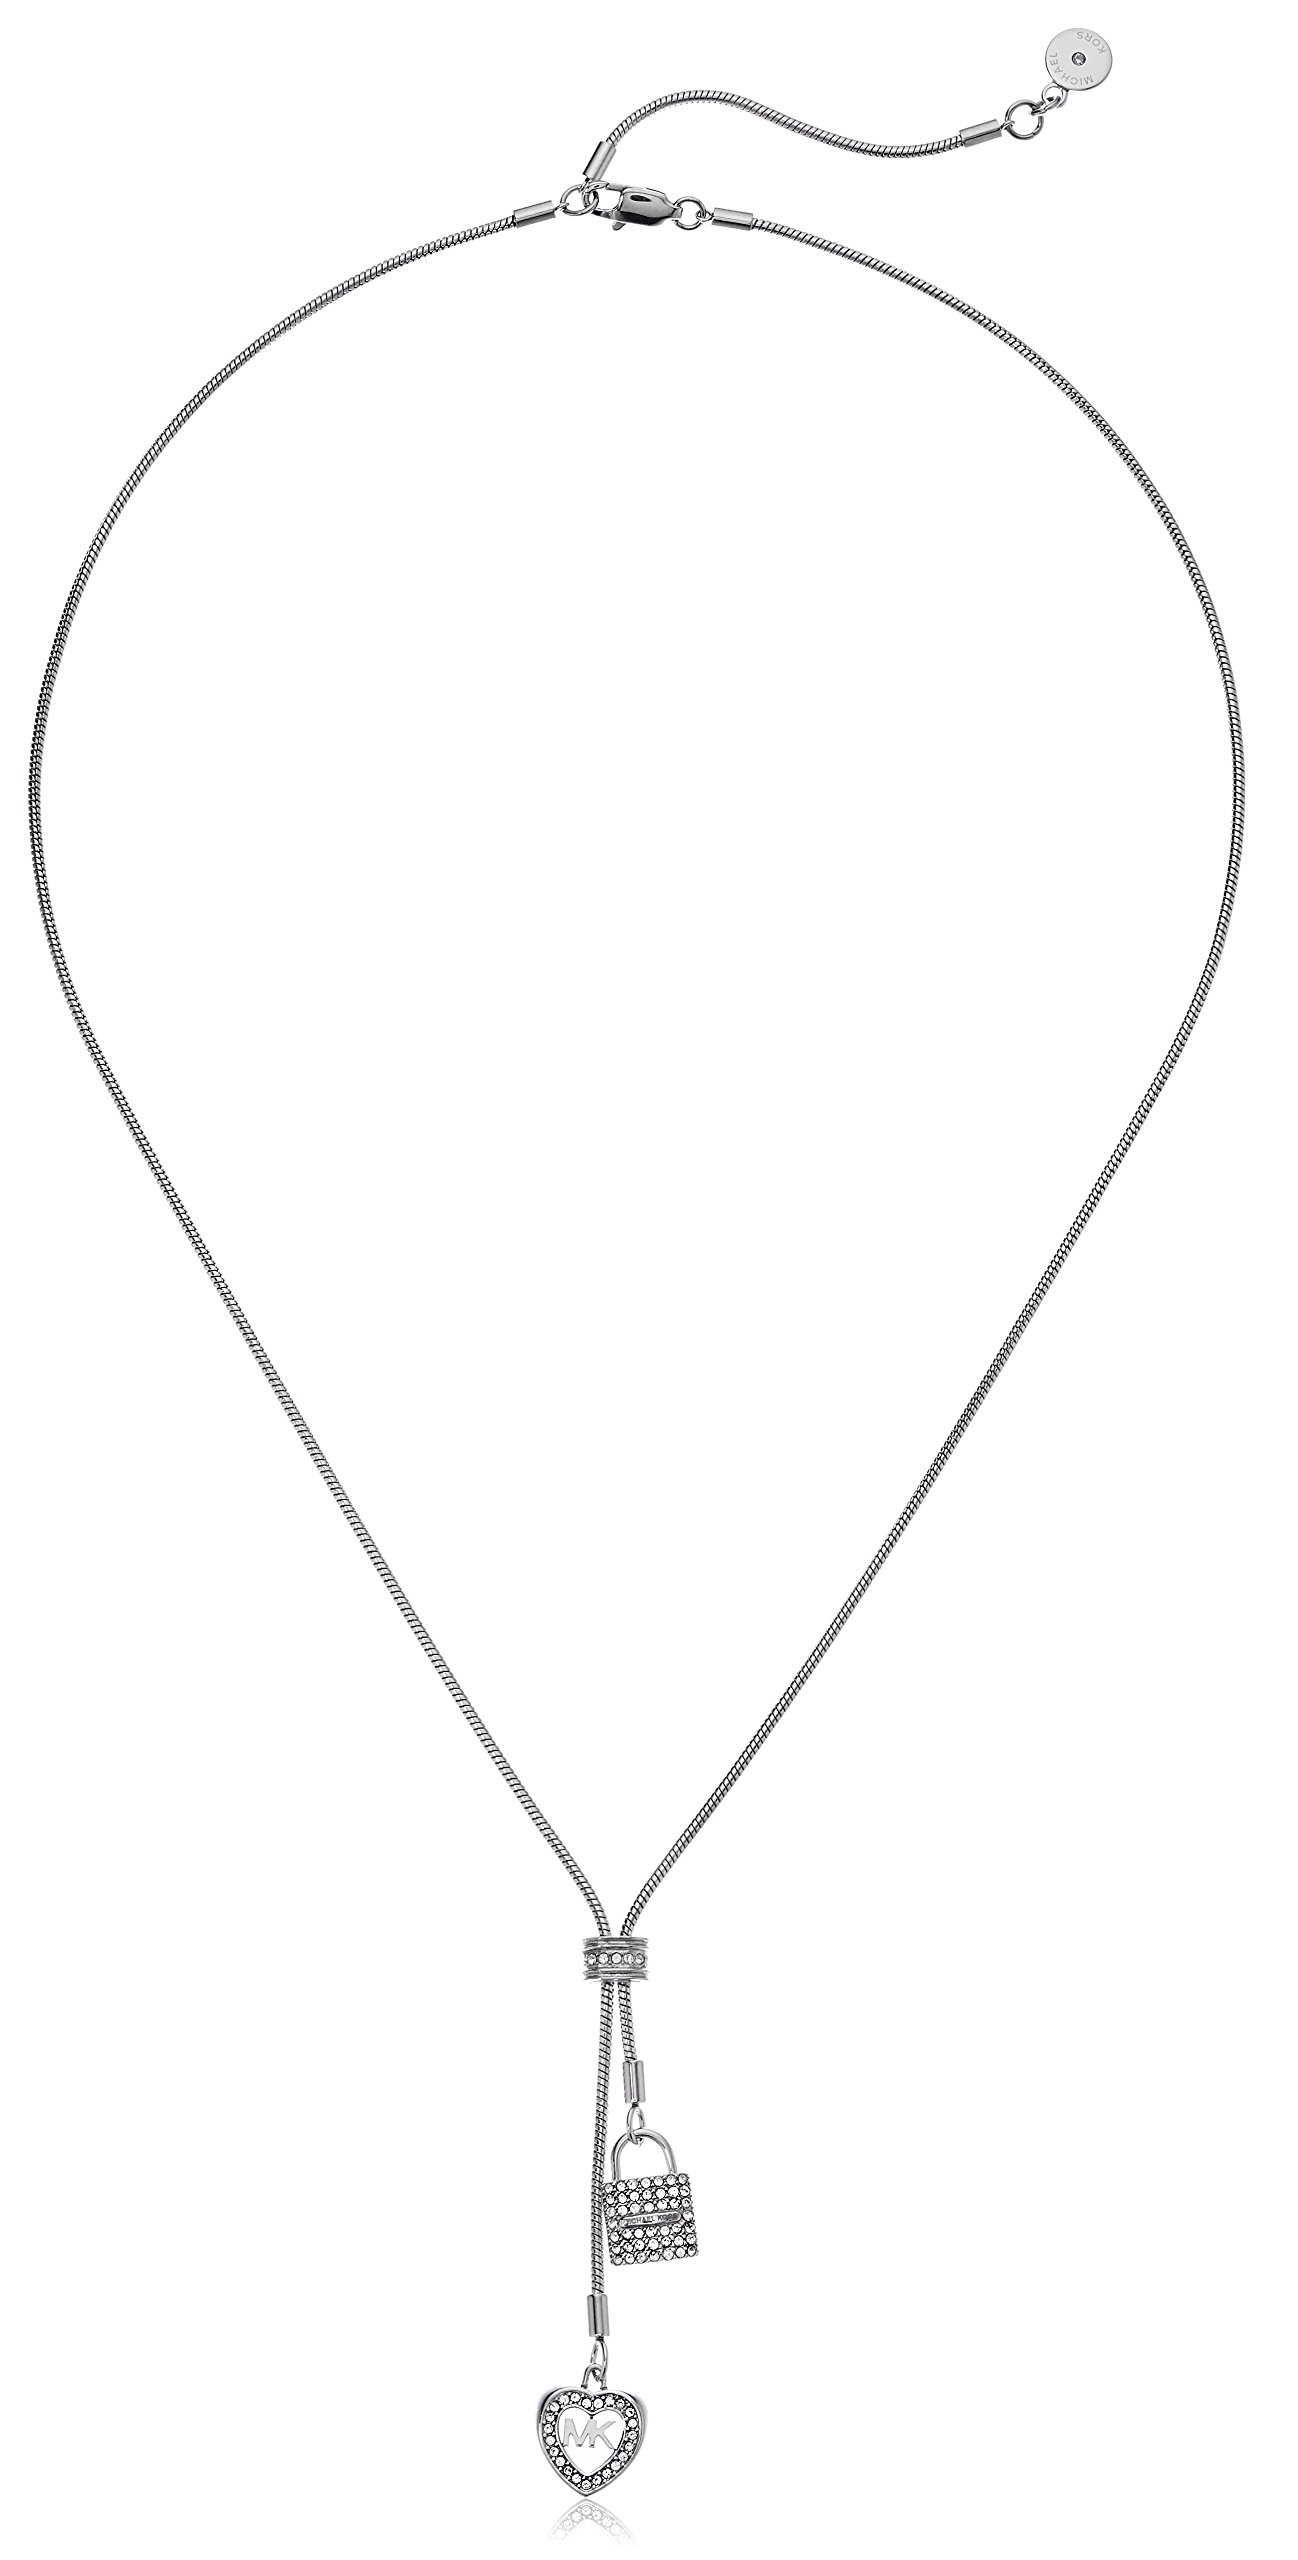 Michael Kors Womens Silver-Tone Charm Y Shaped Necklace, One Size